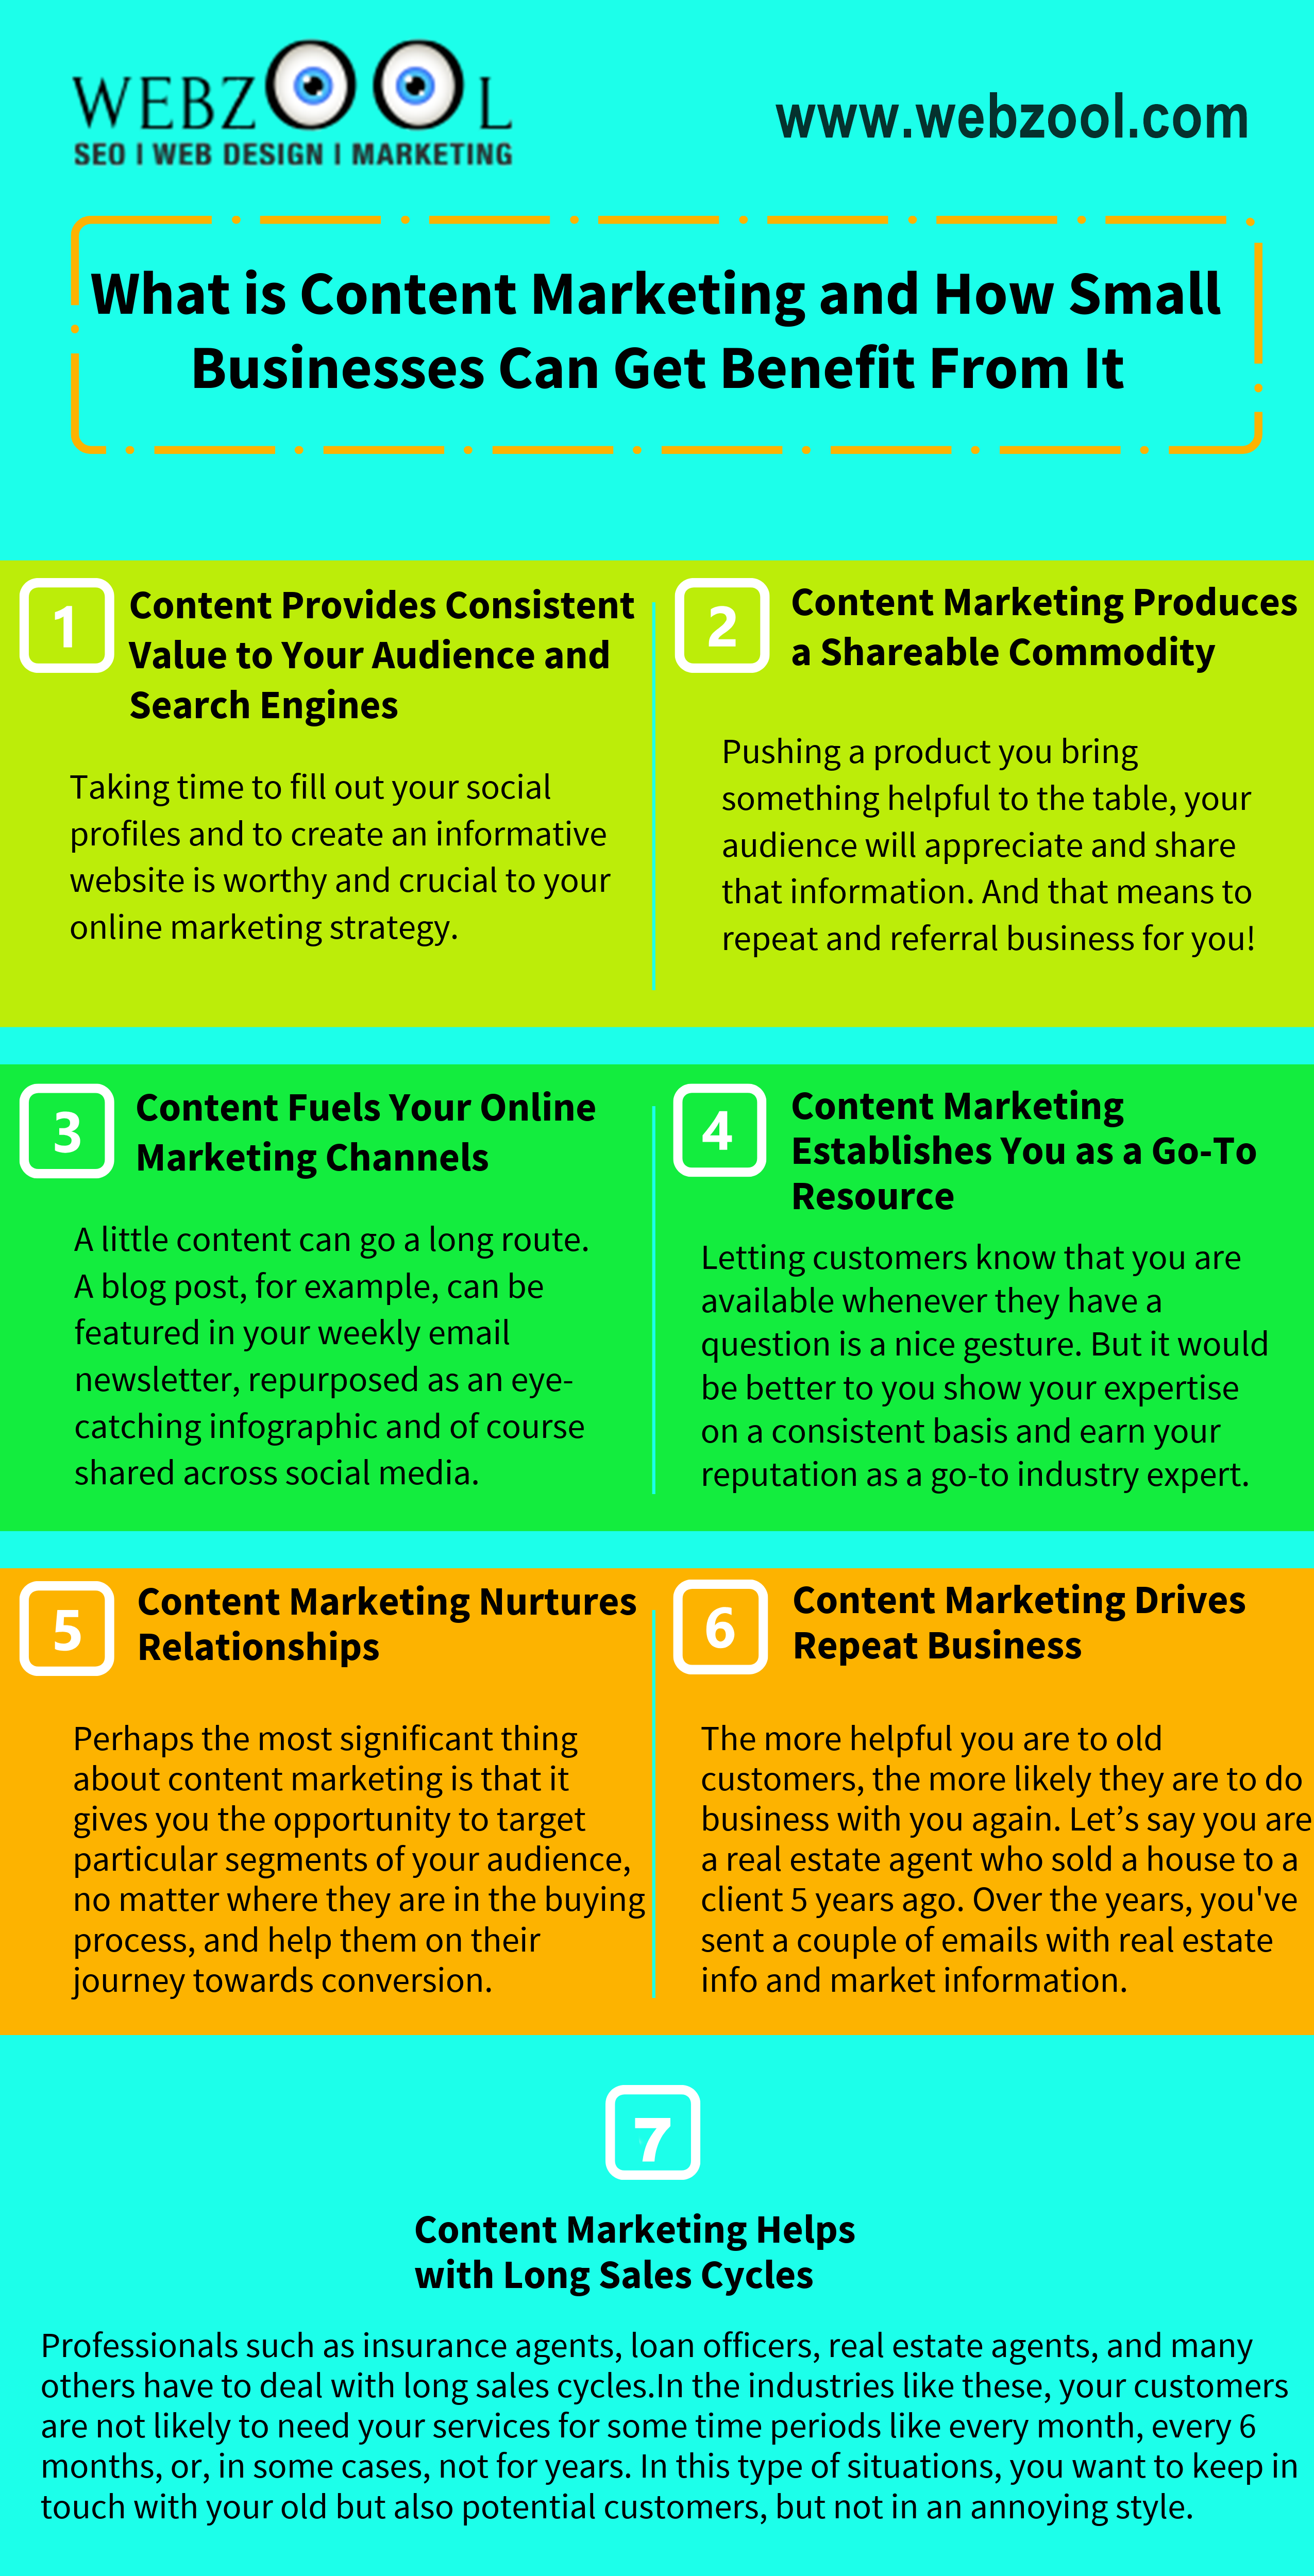 What is content marketing and how small businesses can get benefit